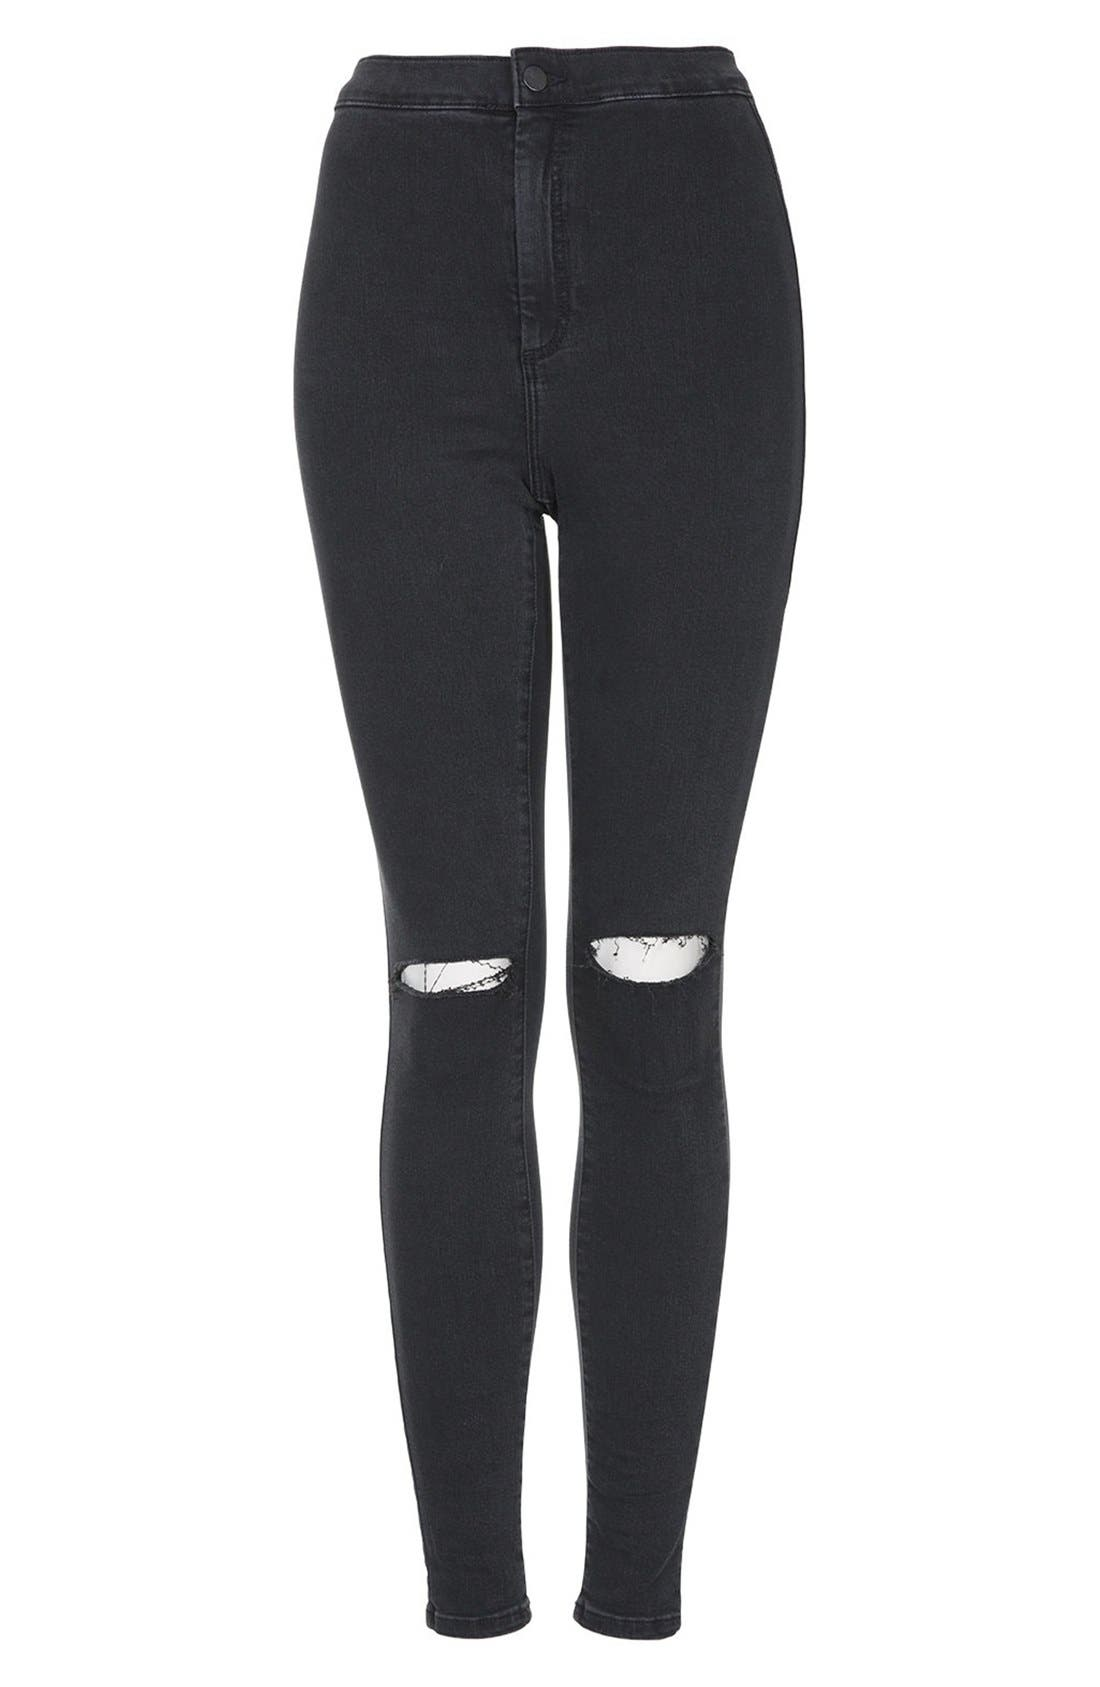 Alternate Image 3  - Topshop 'Joni' Ripped Skinny Jeans (Black)